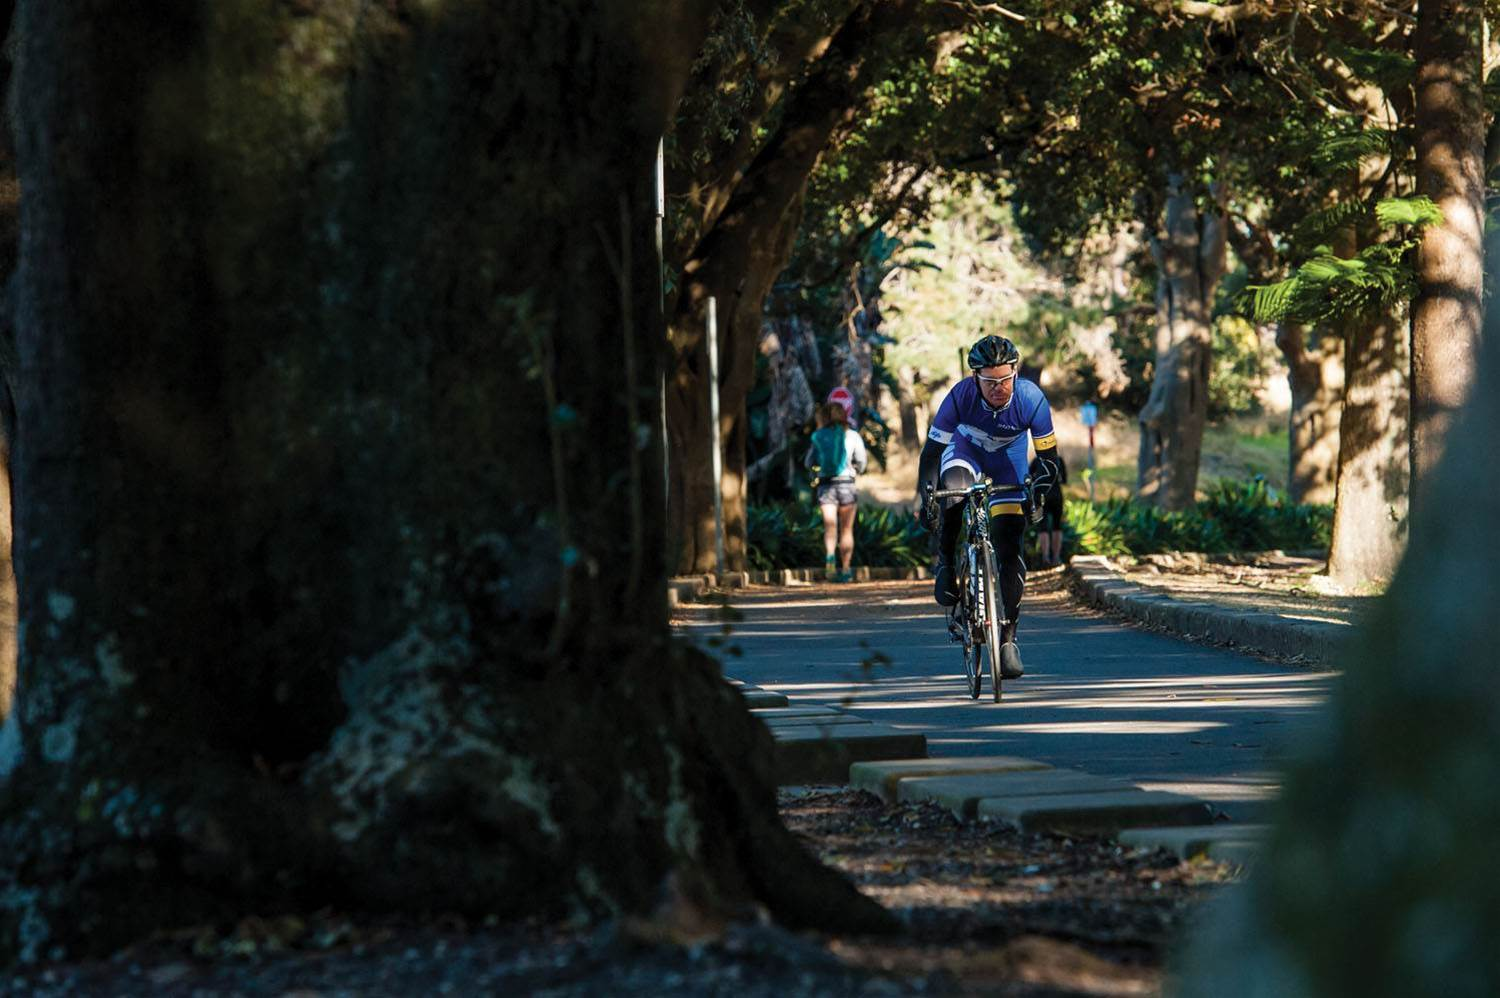 Cycle stronger to work smarter